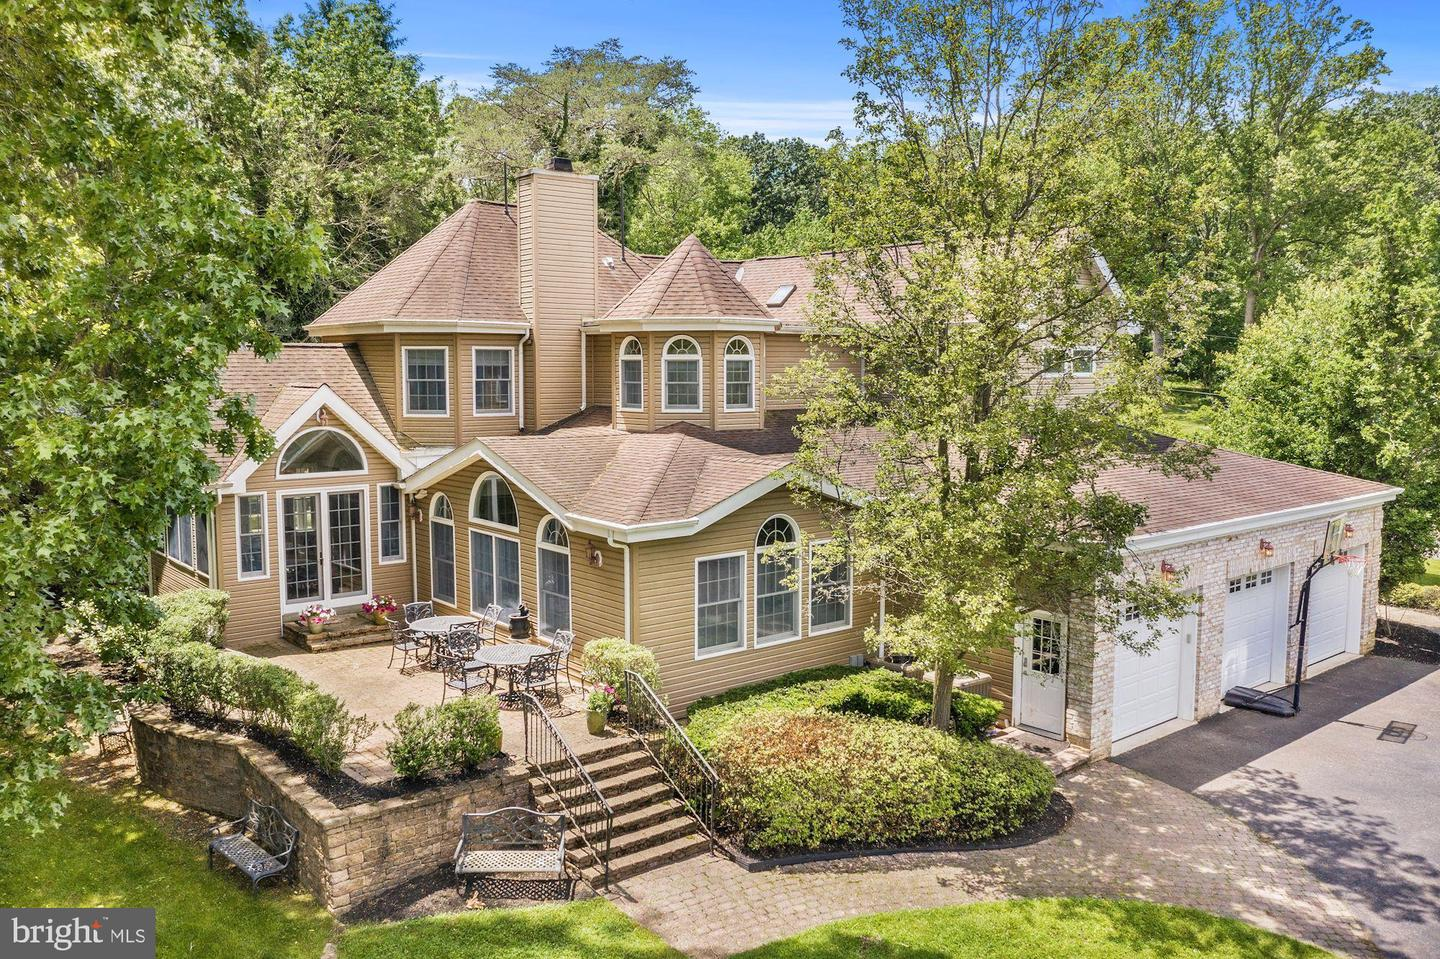 33 IMPERIAL DR, CHERRY HILL, NJ 08003